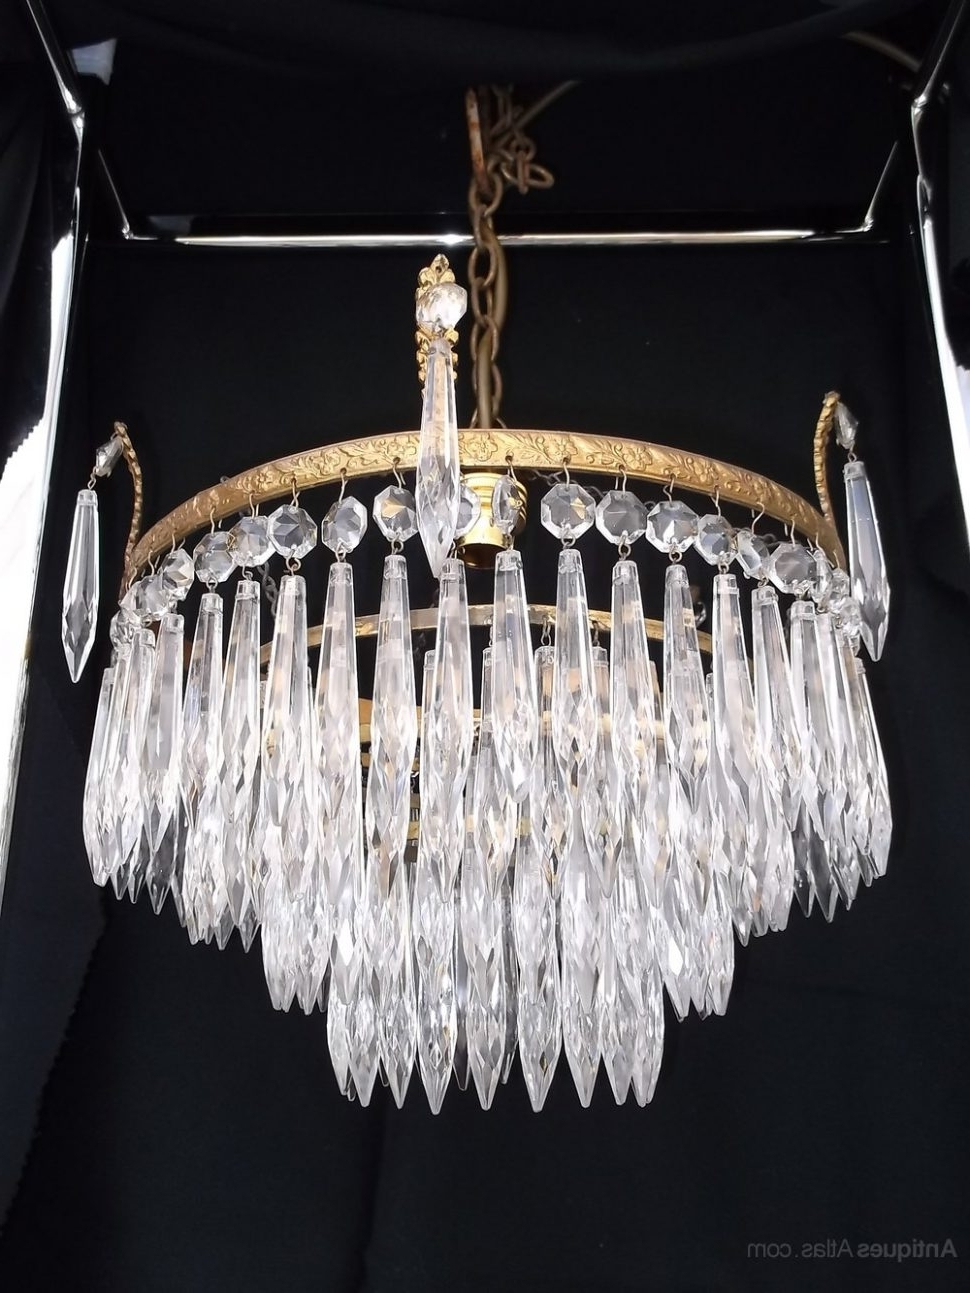 Waterfall Chandeliers Within Best And Newest Chandeliers Design : Awesome Antique Crystal Chandelier Chandeliers (View 12 of 15)